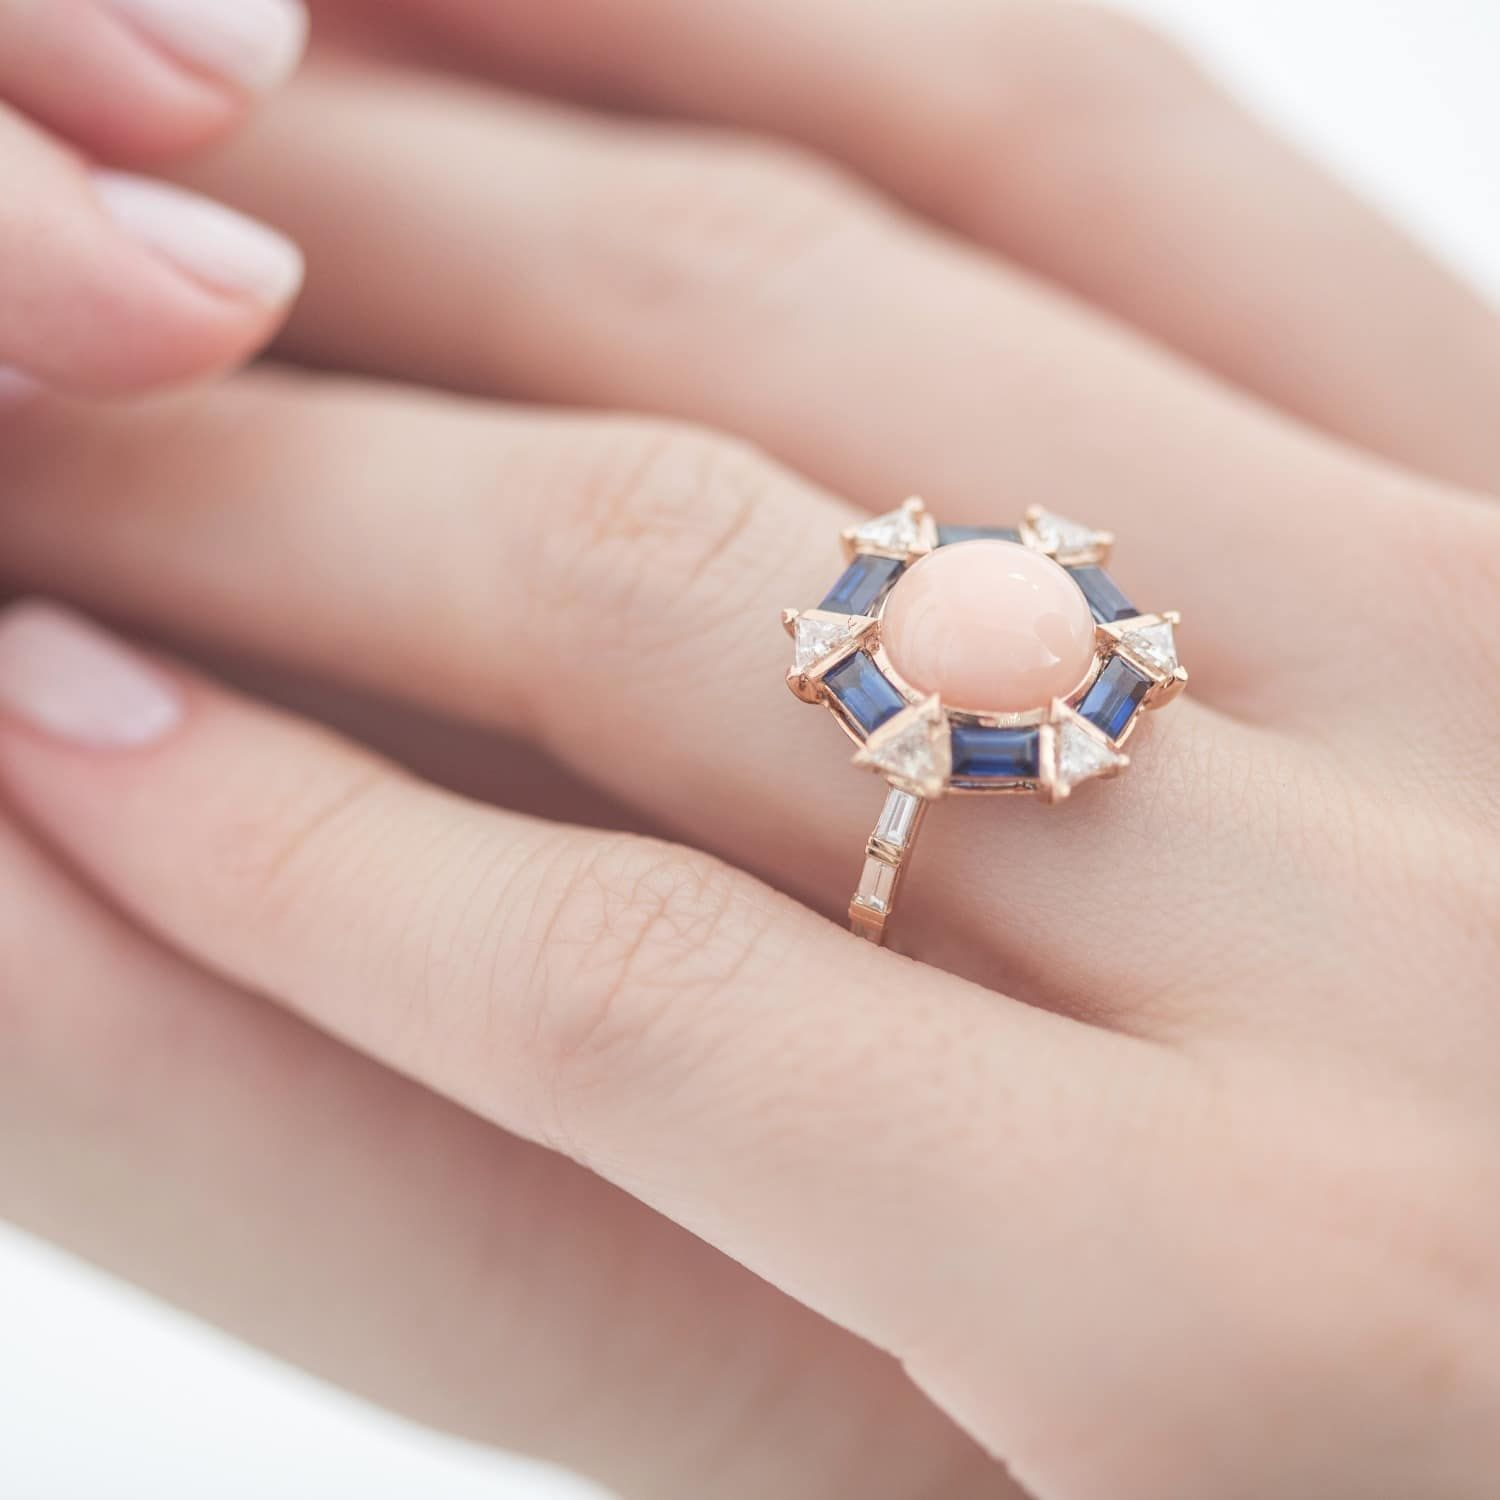 The Vintage Coral Ring | Coral ring, Ring and Razzle dazzle